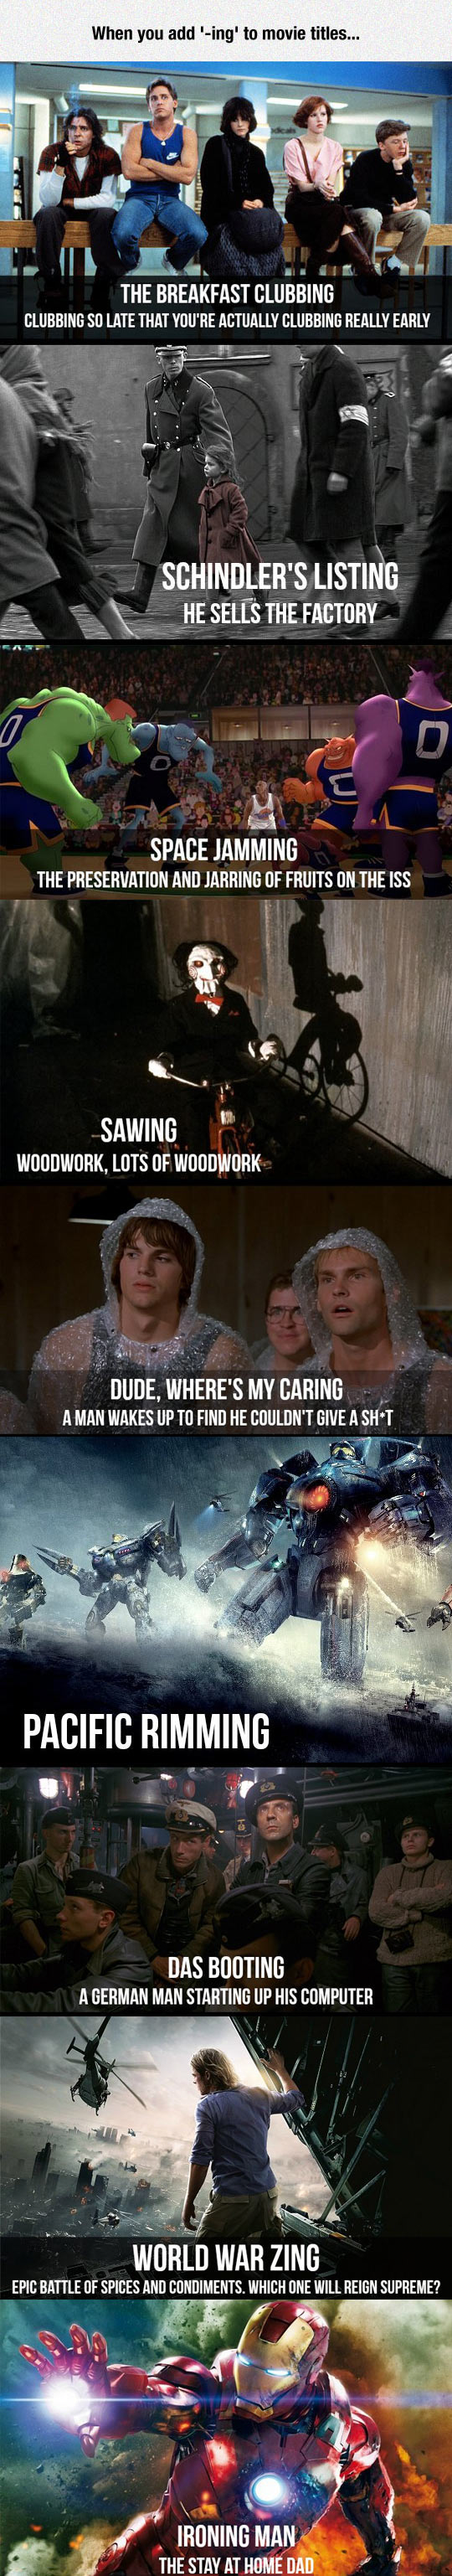 What Is The Movie About Now?